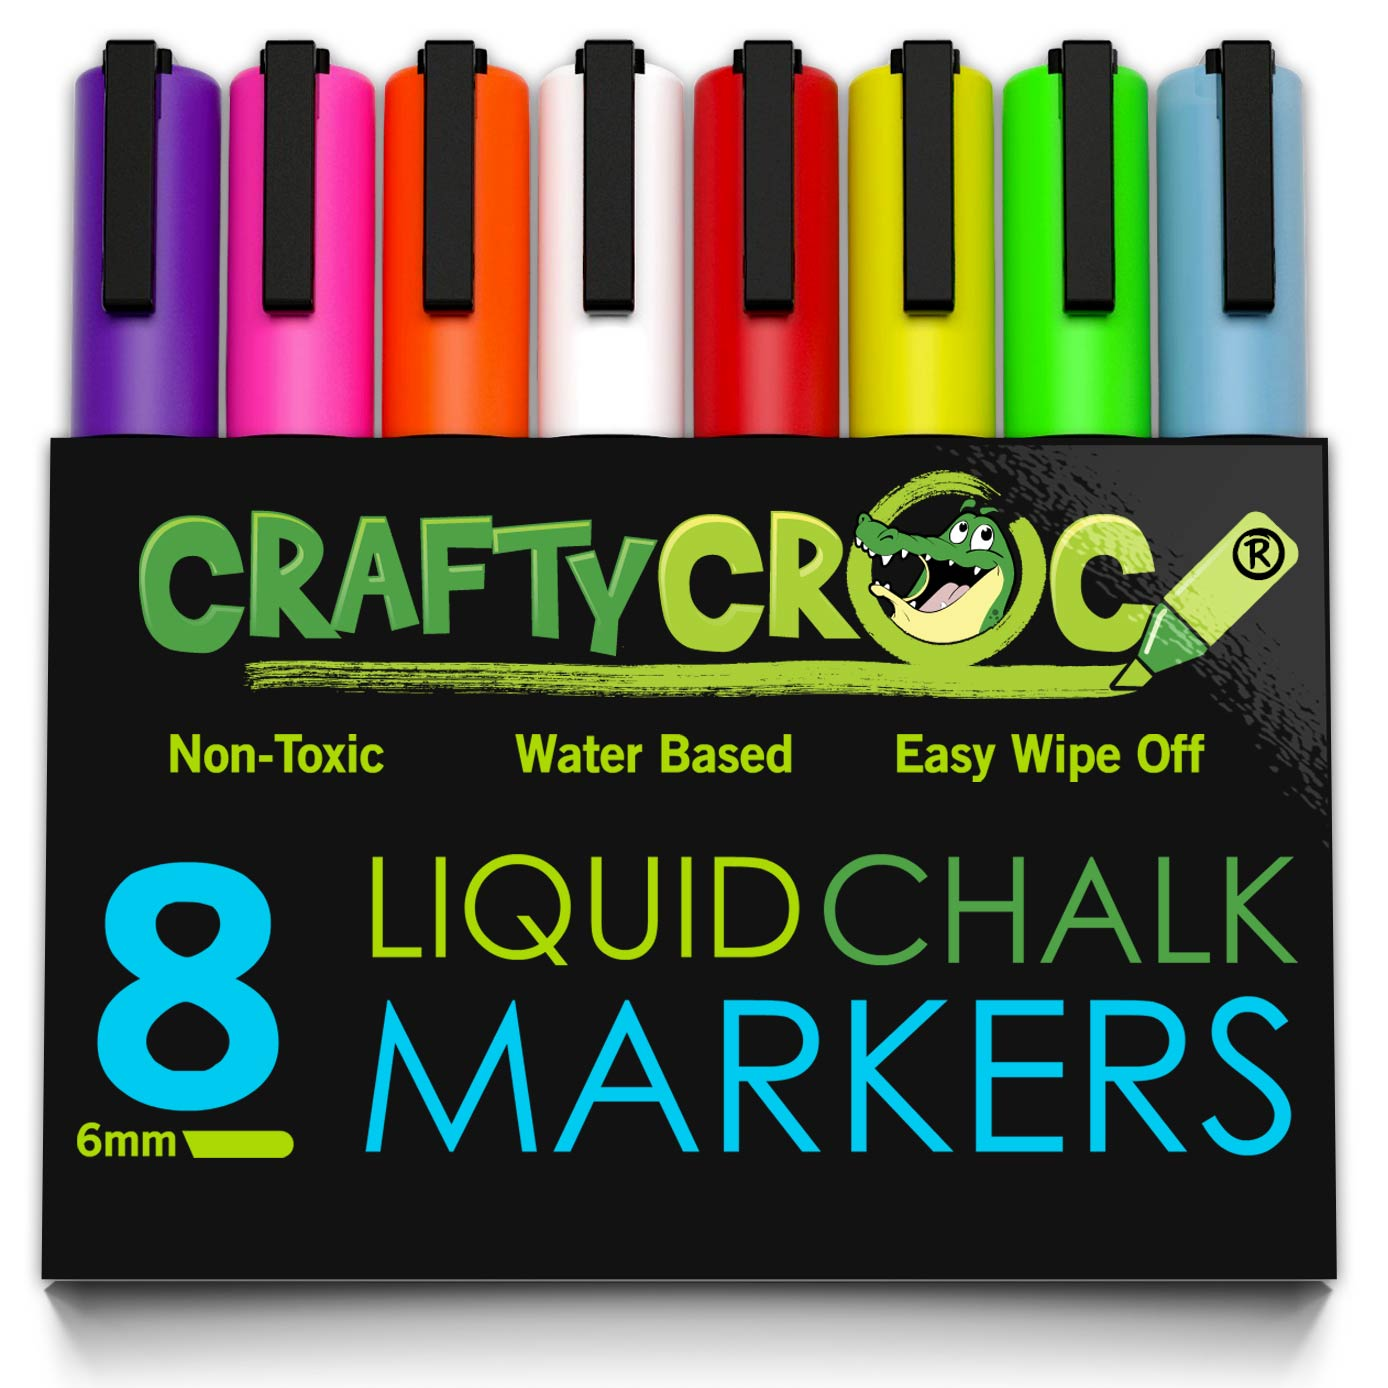 Crafty Croc Wet Erase Liquid Chalk Markers, Pack of 8 Vibrant Neon Colors